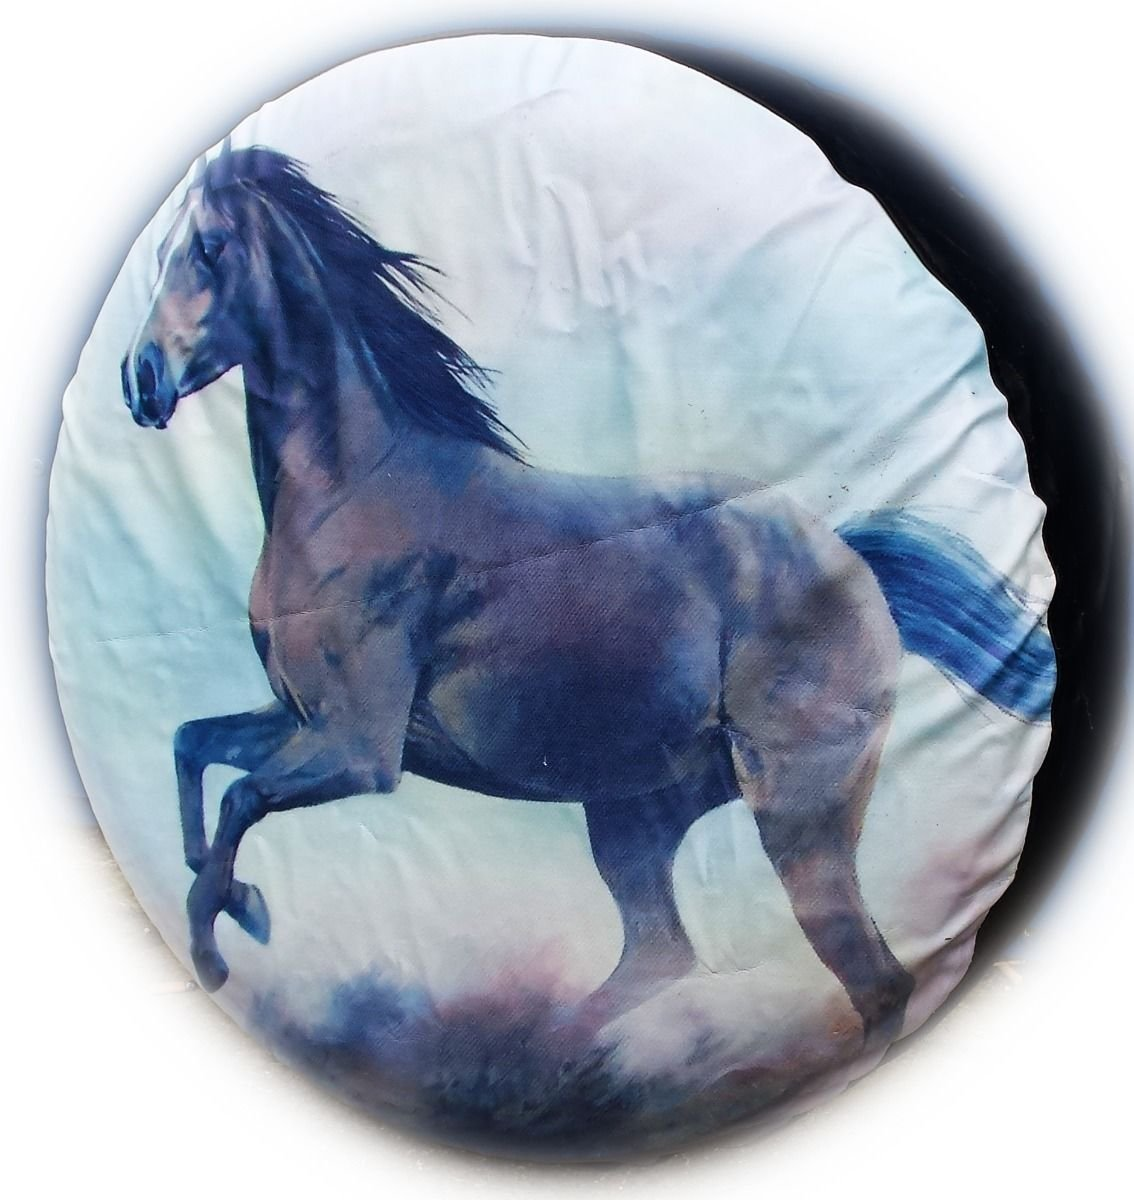 WHEEL COVER WHEELCOVER SPARE TYRE TIRE 4X4 HORSE FOR ALL SIZES BargainworldUK